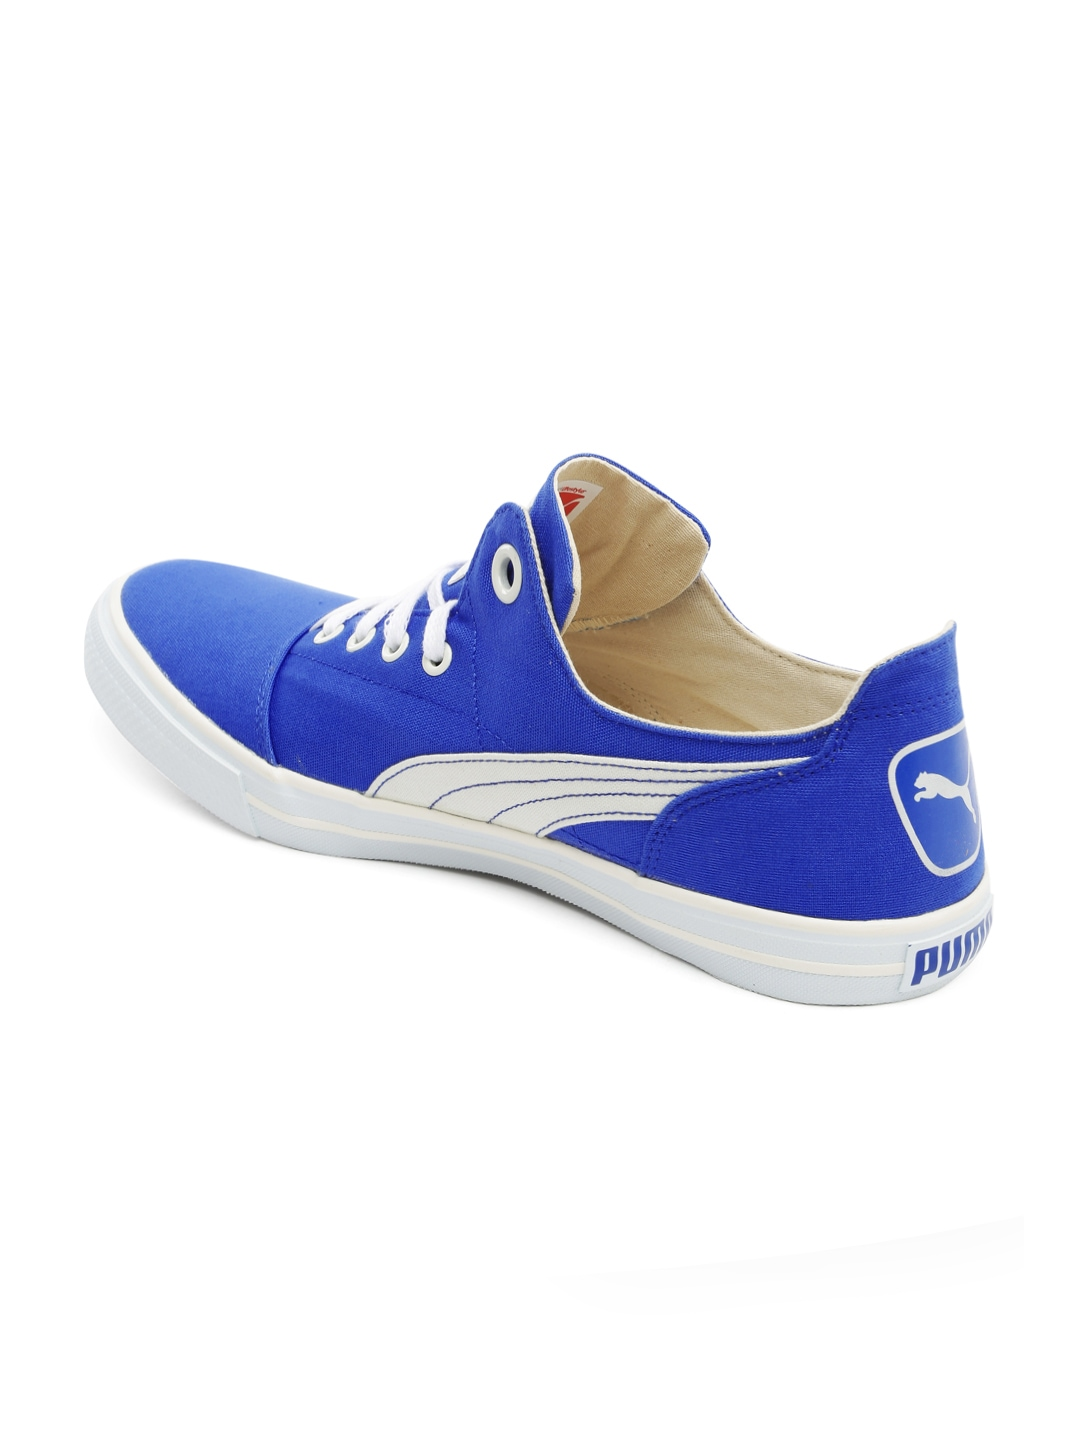 myntra unisex blue limnos cat 2 dp casual shoes